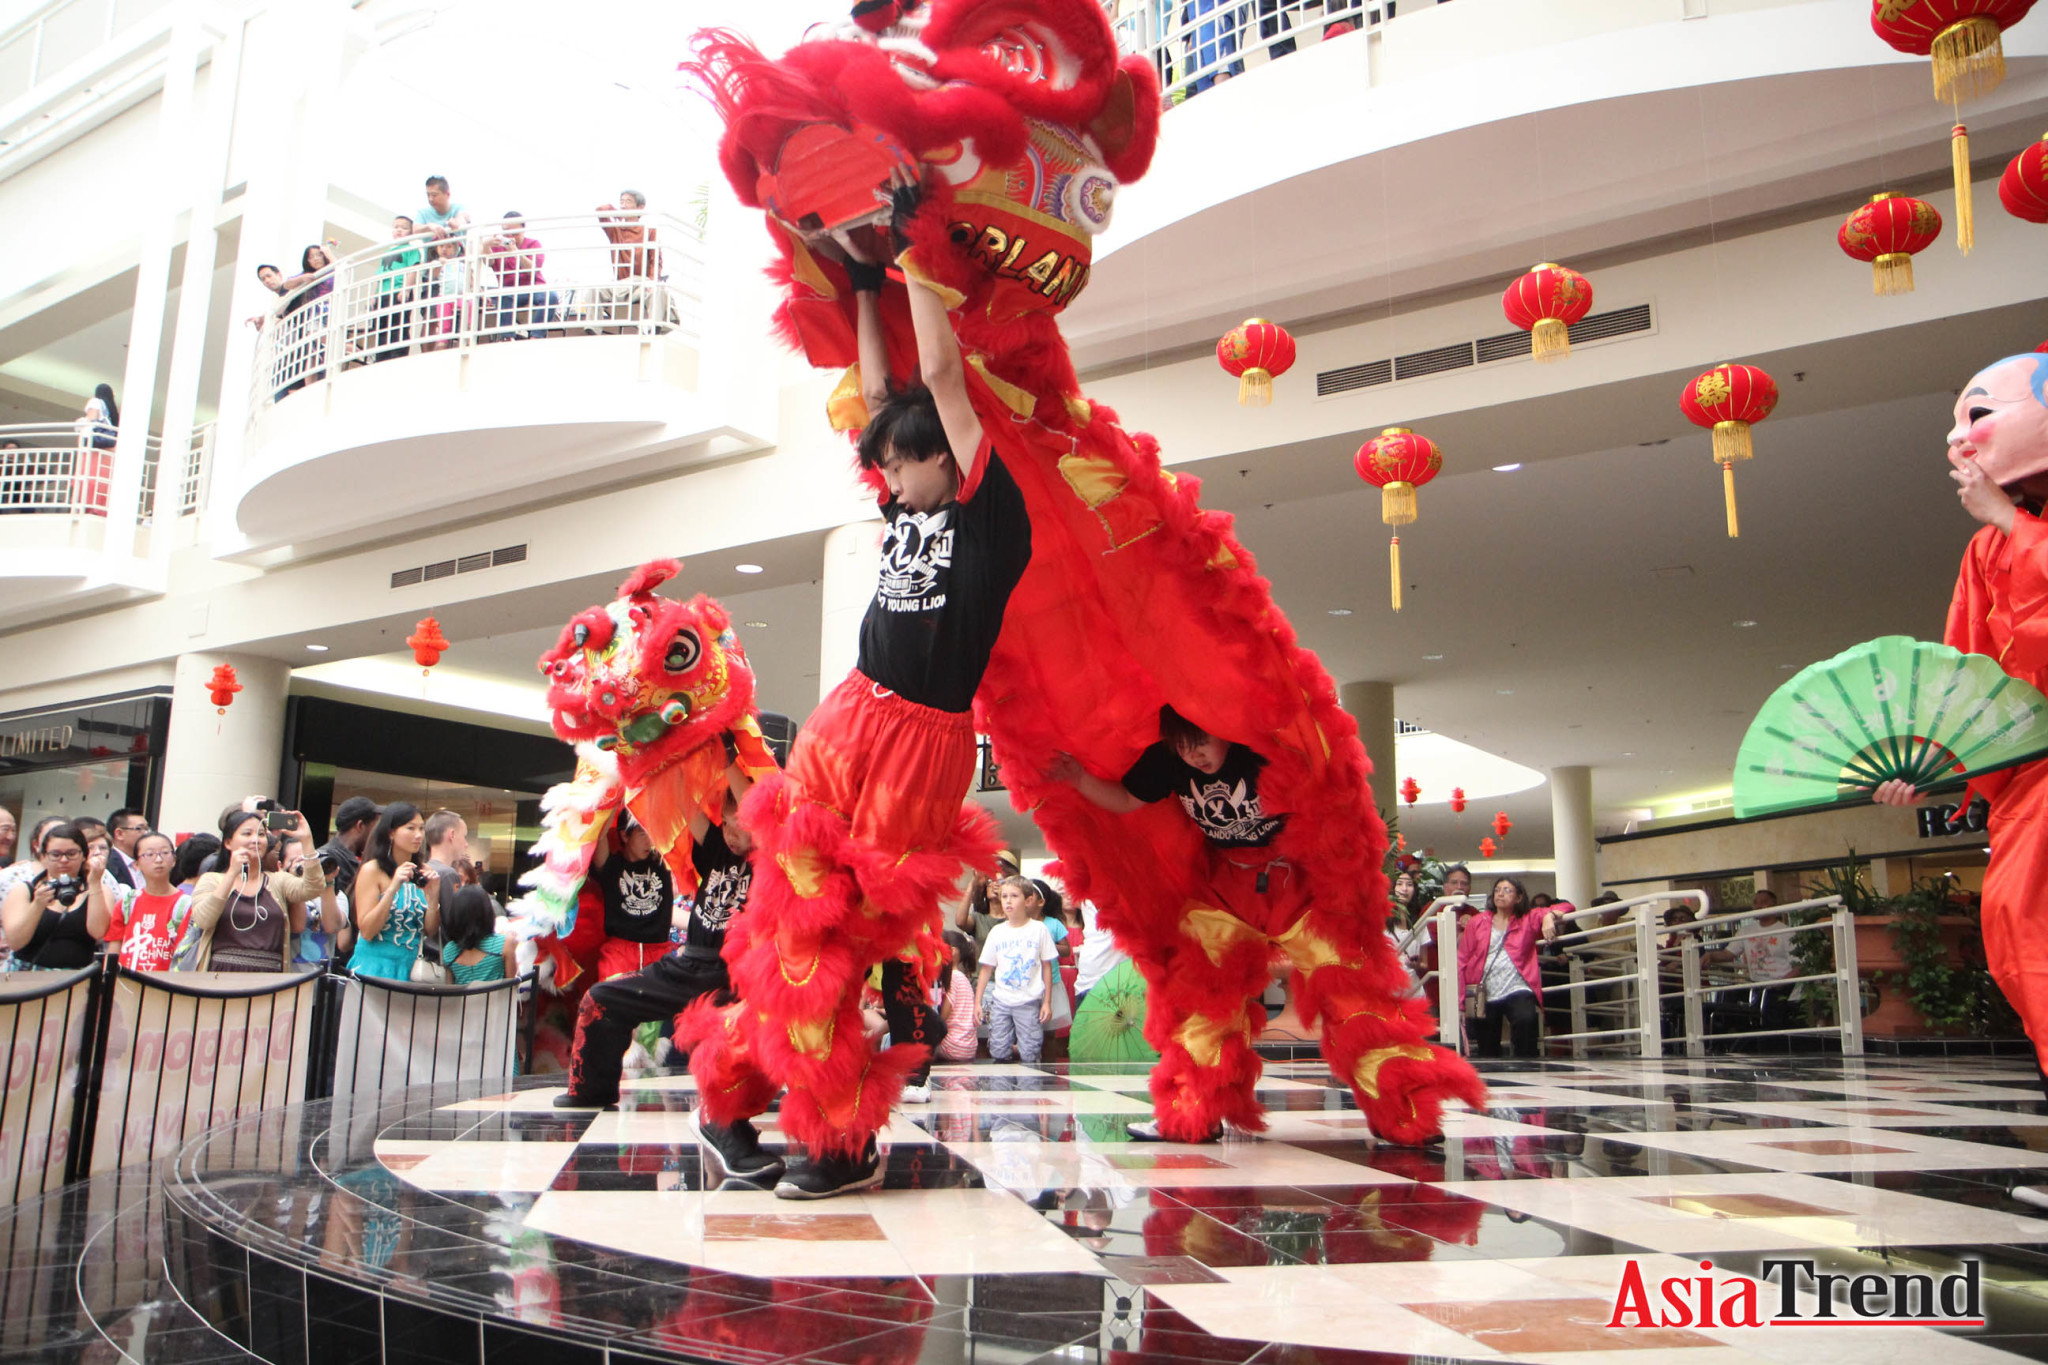 Dragon Parade Lunar New Year 2015 Stage Performance at Orlando Fashion Square